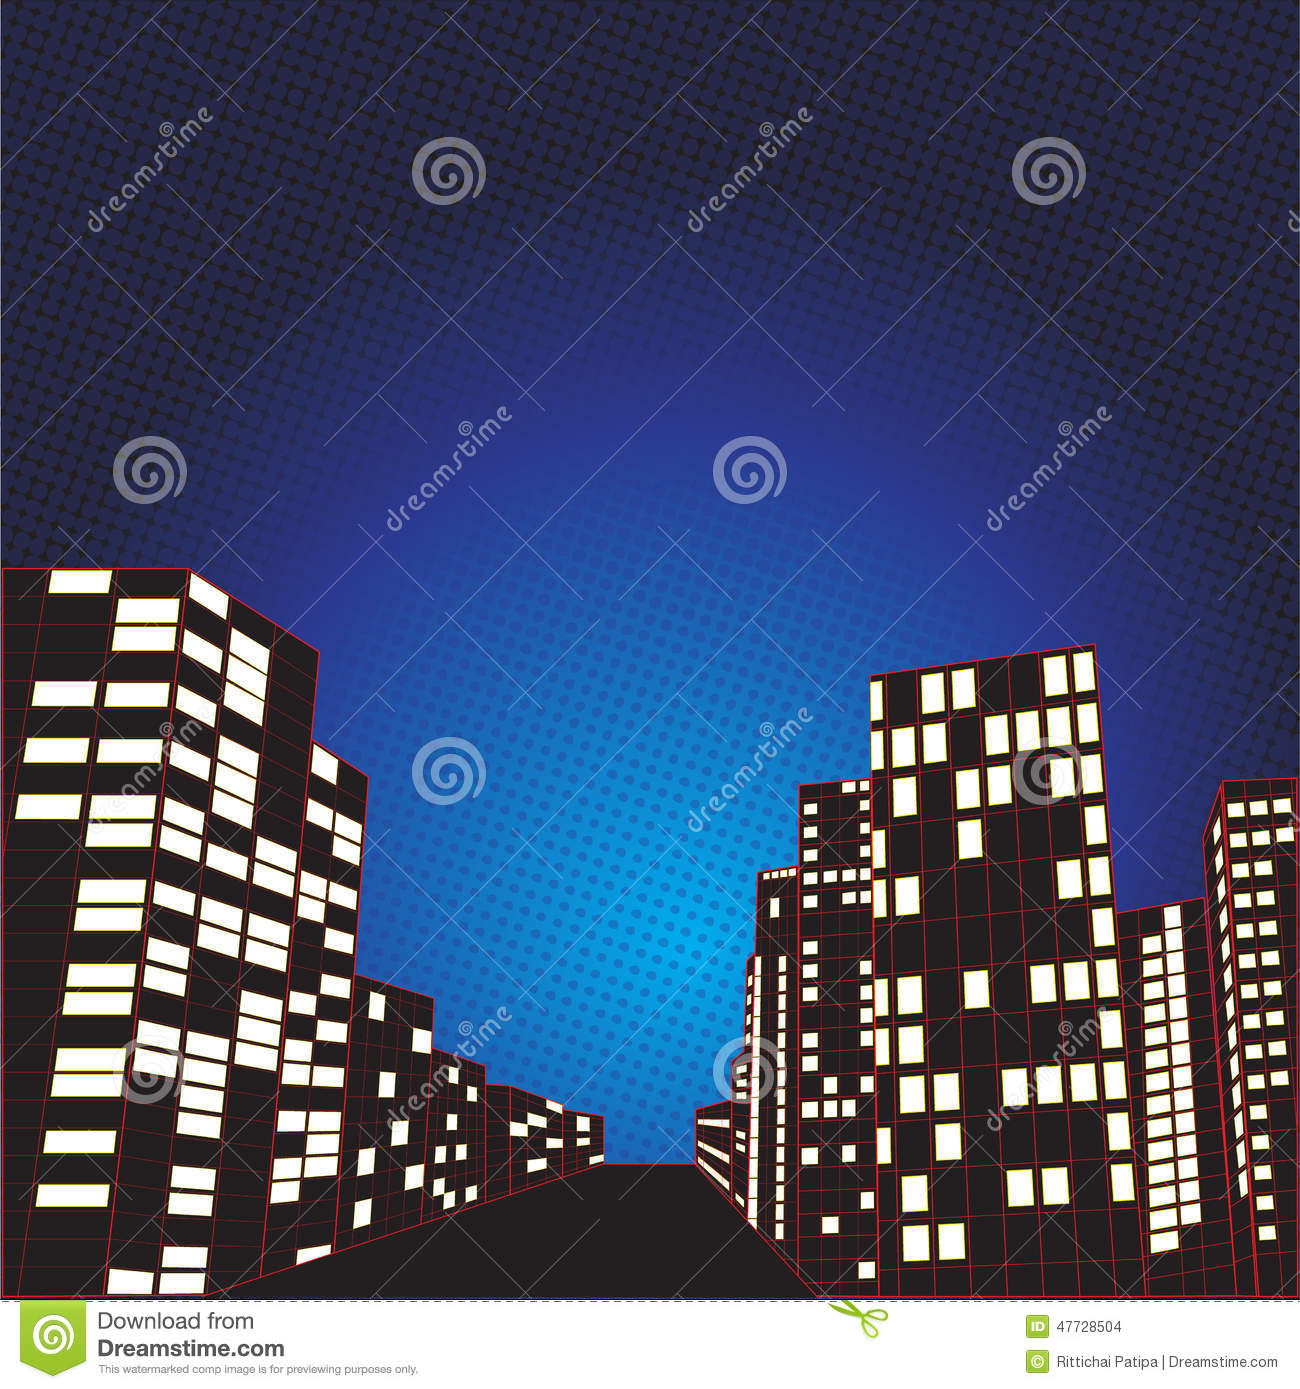 Night City Comic Background Stock Vector - Image: 47728504